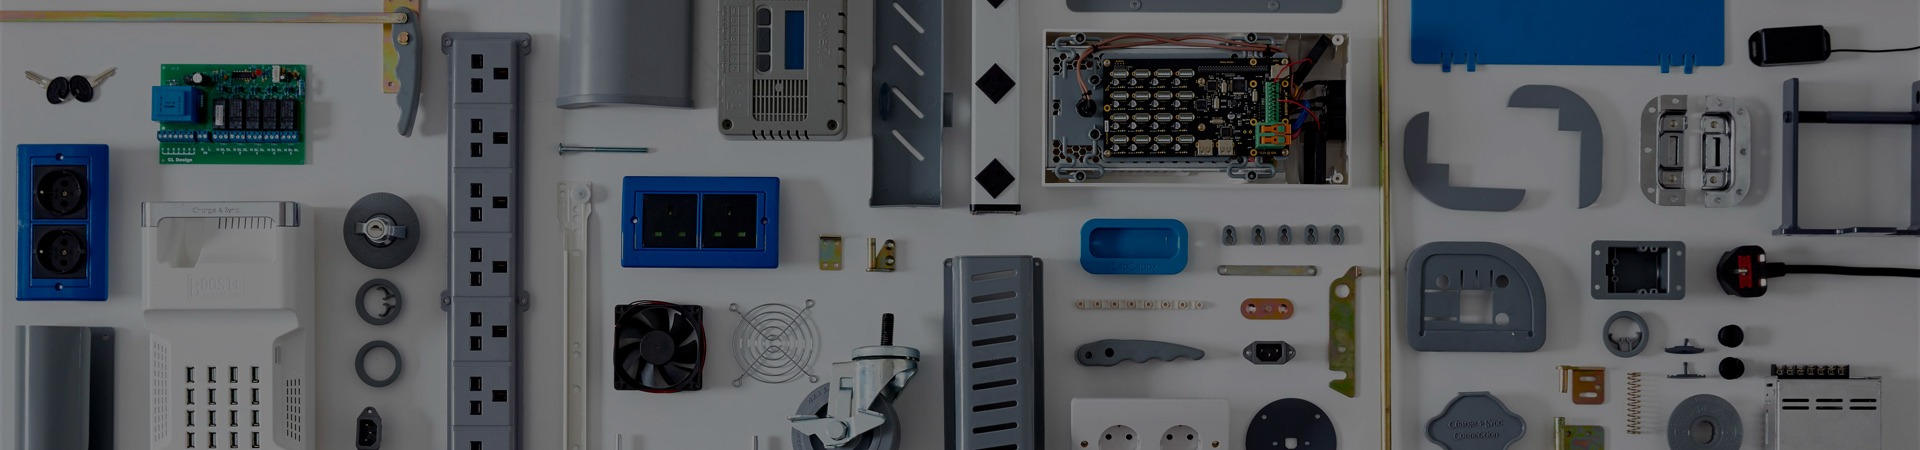 LapCabby electrical components banner